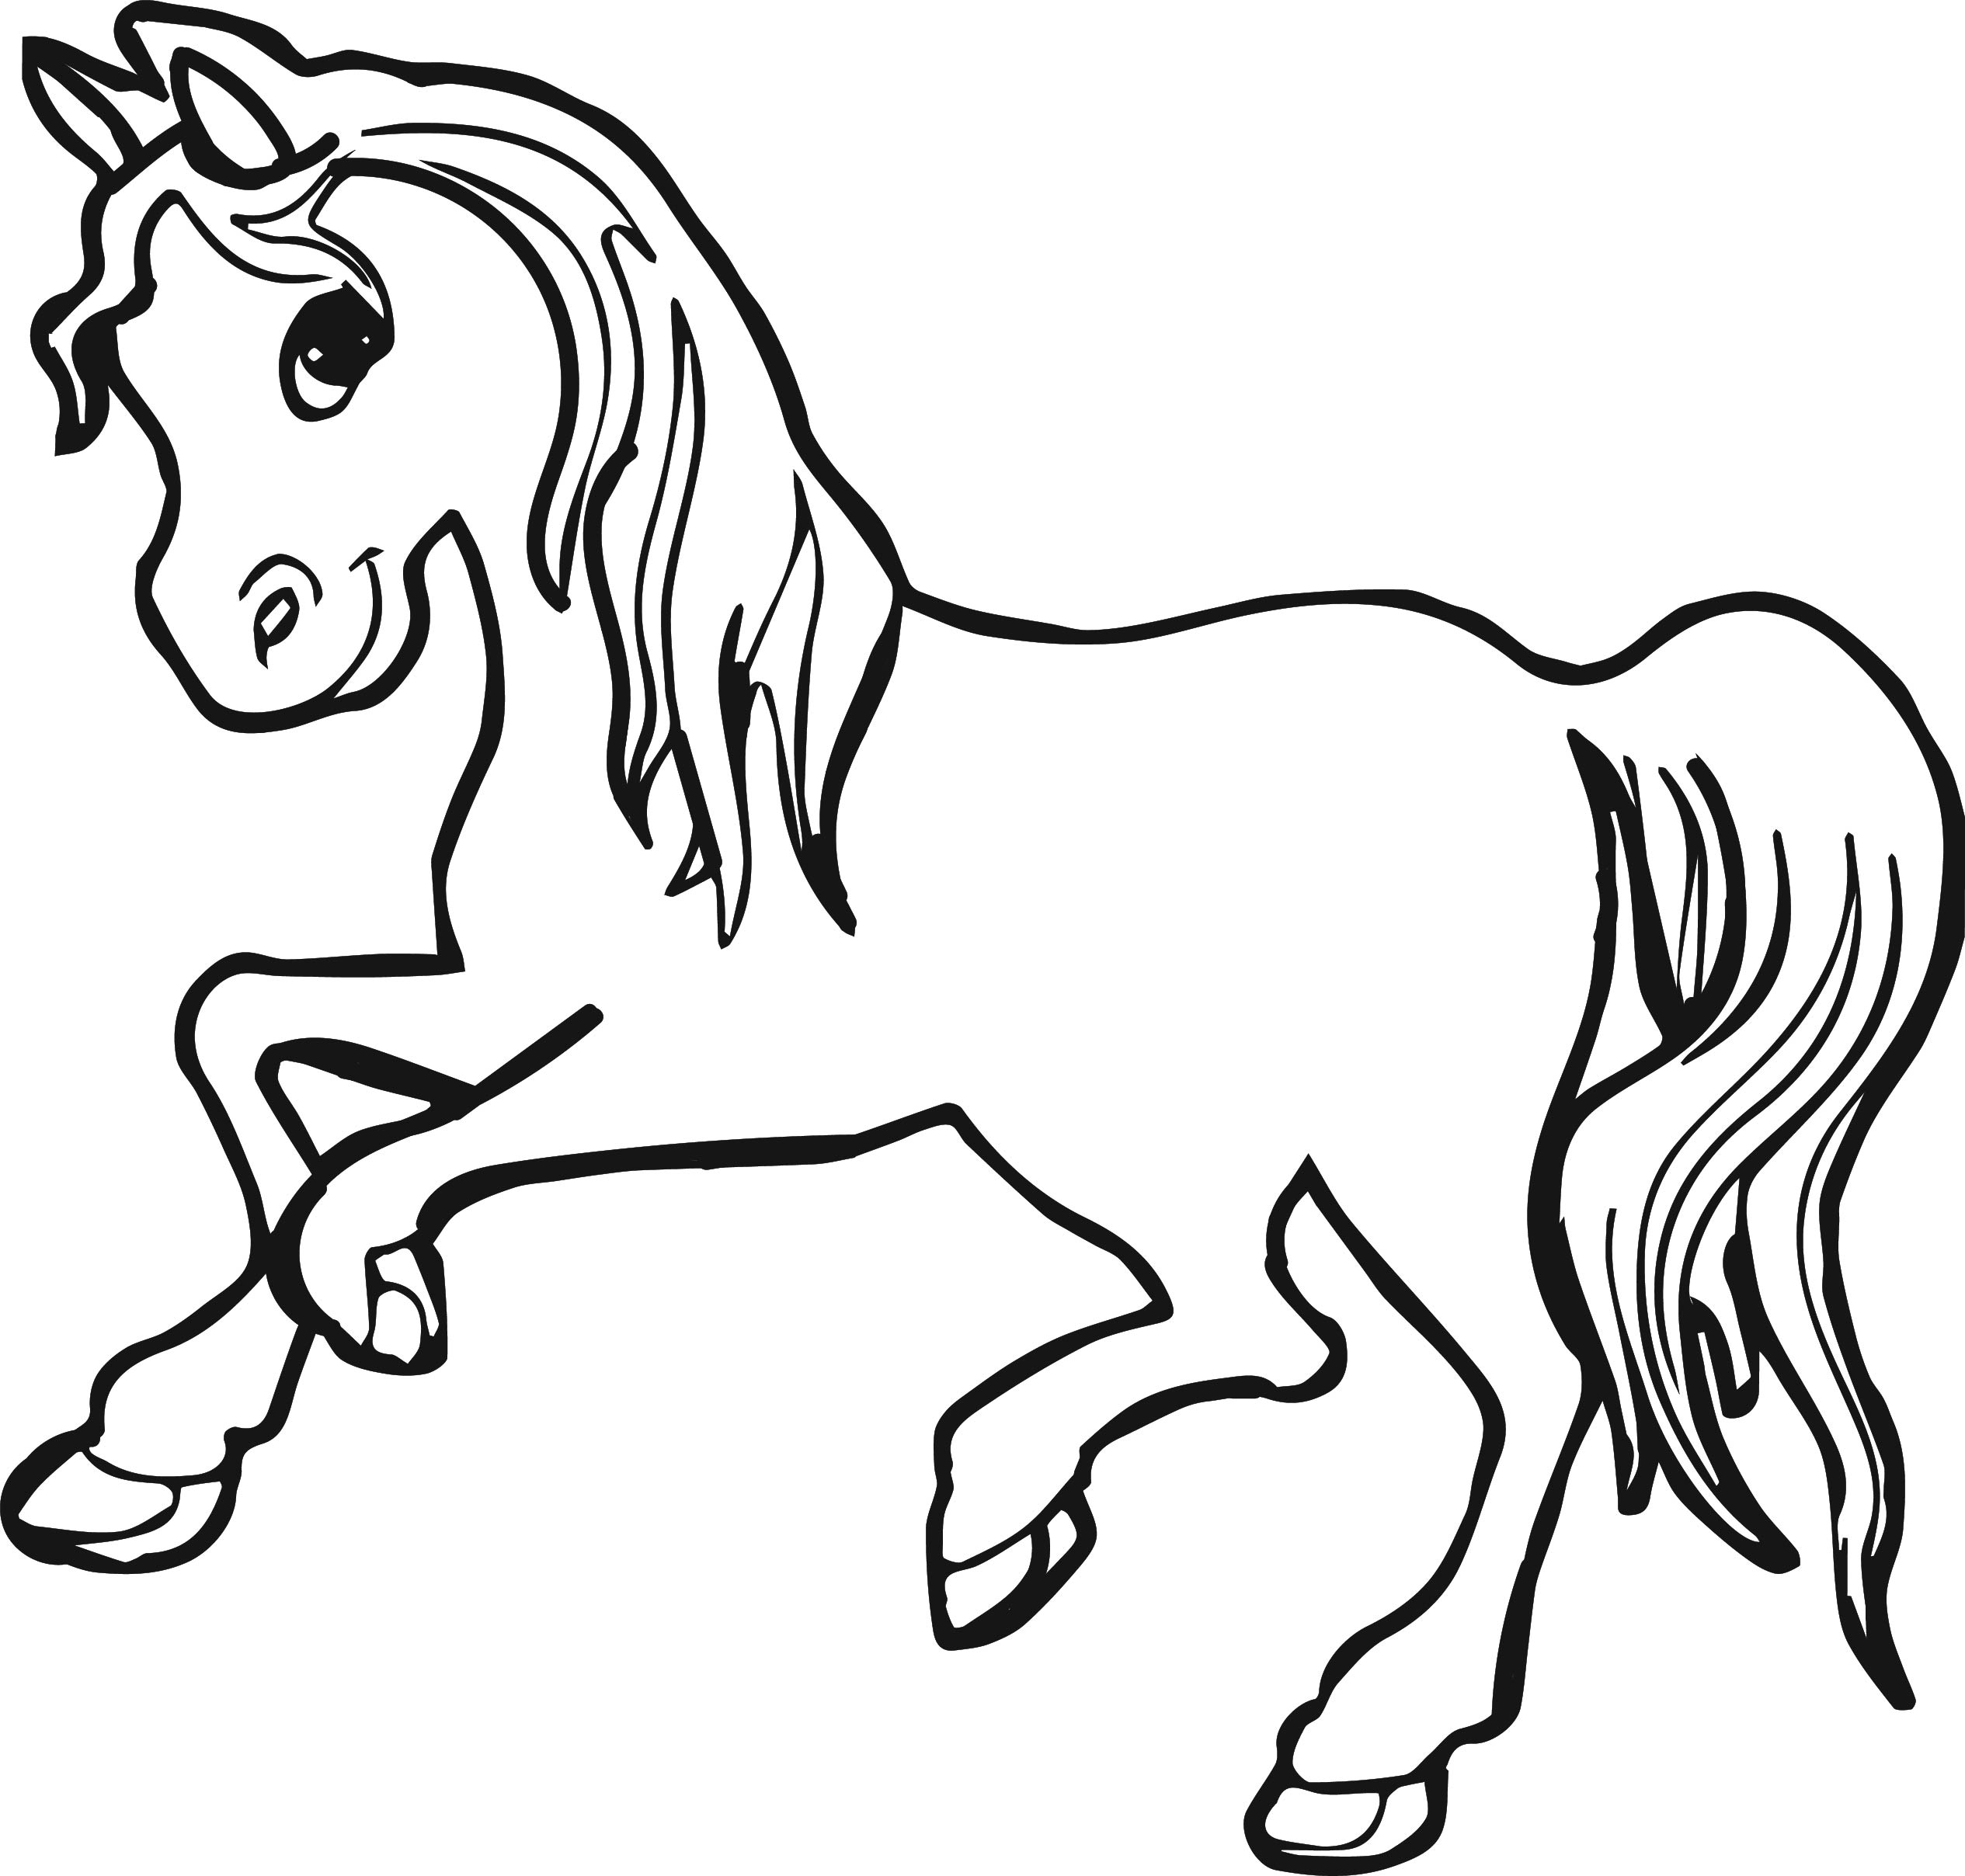 horses to color horses coloring pages download and print horses coloring to horses color